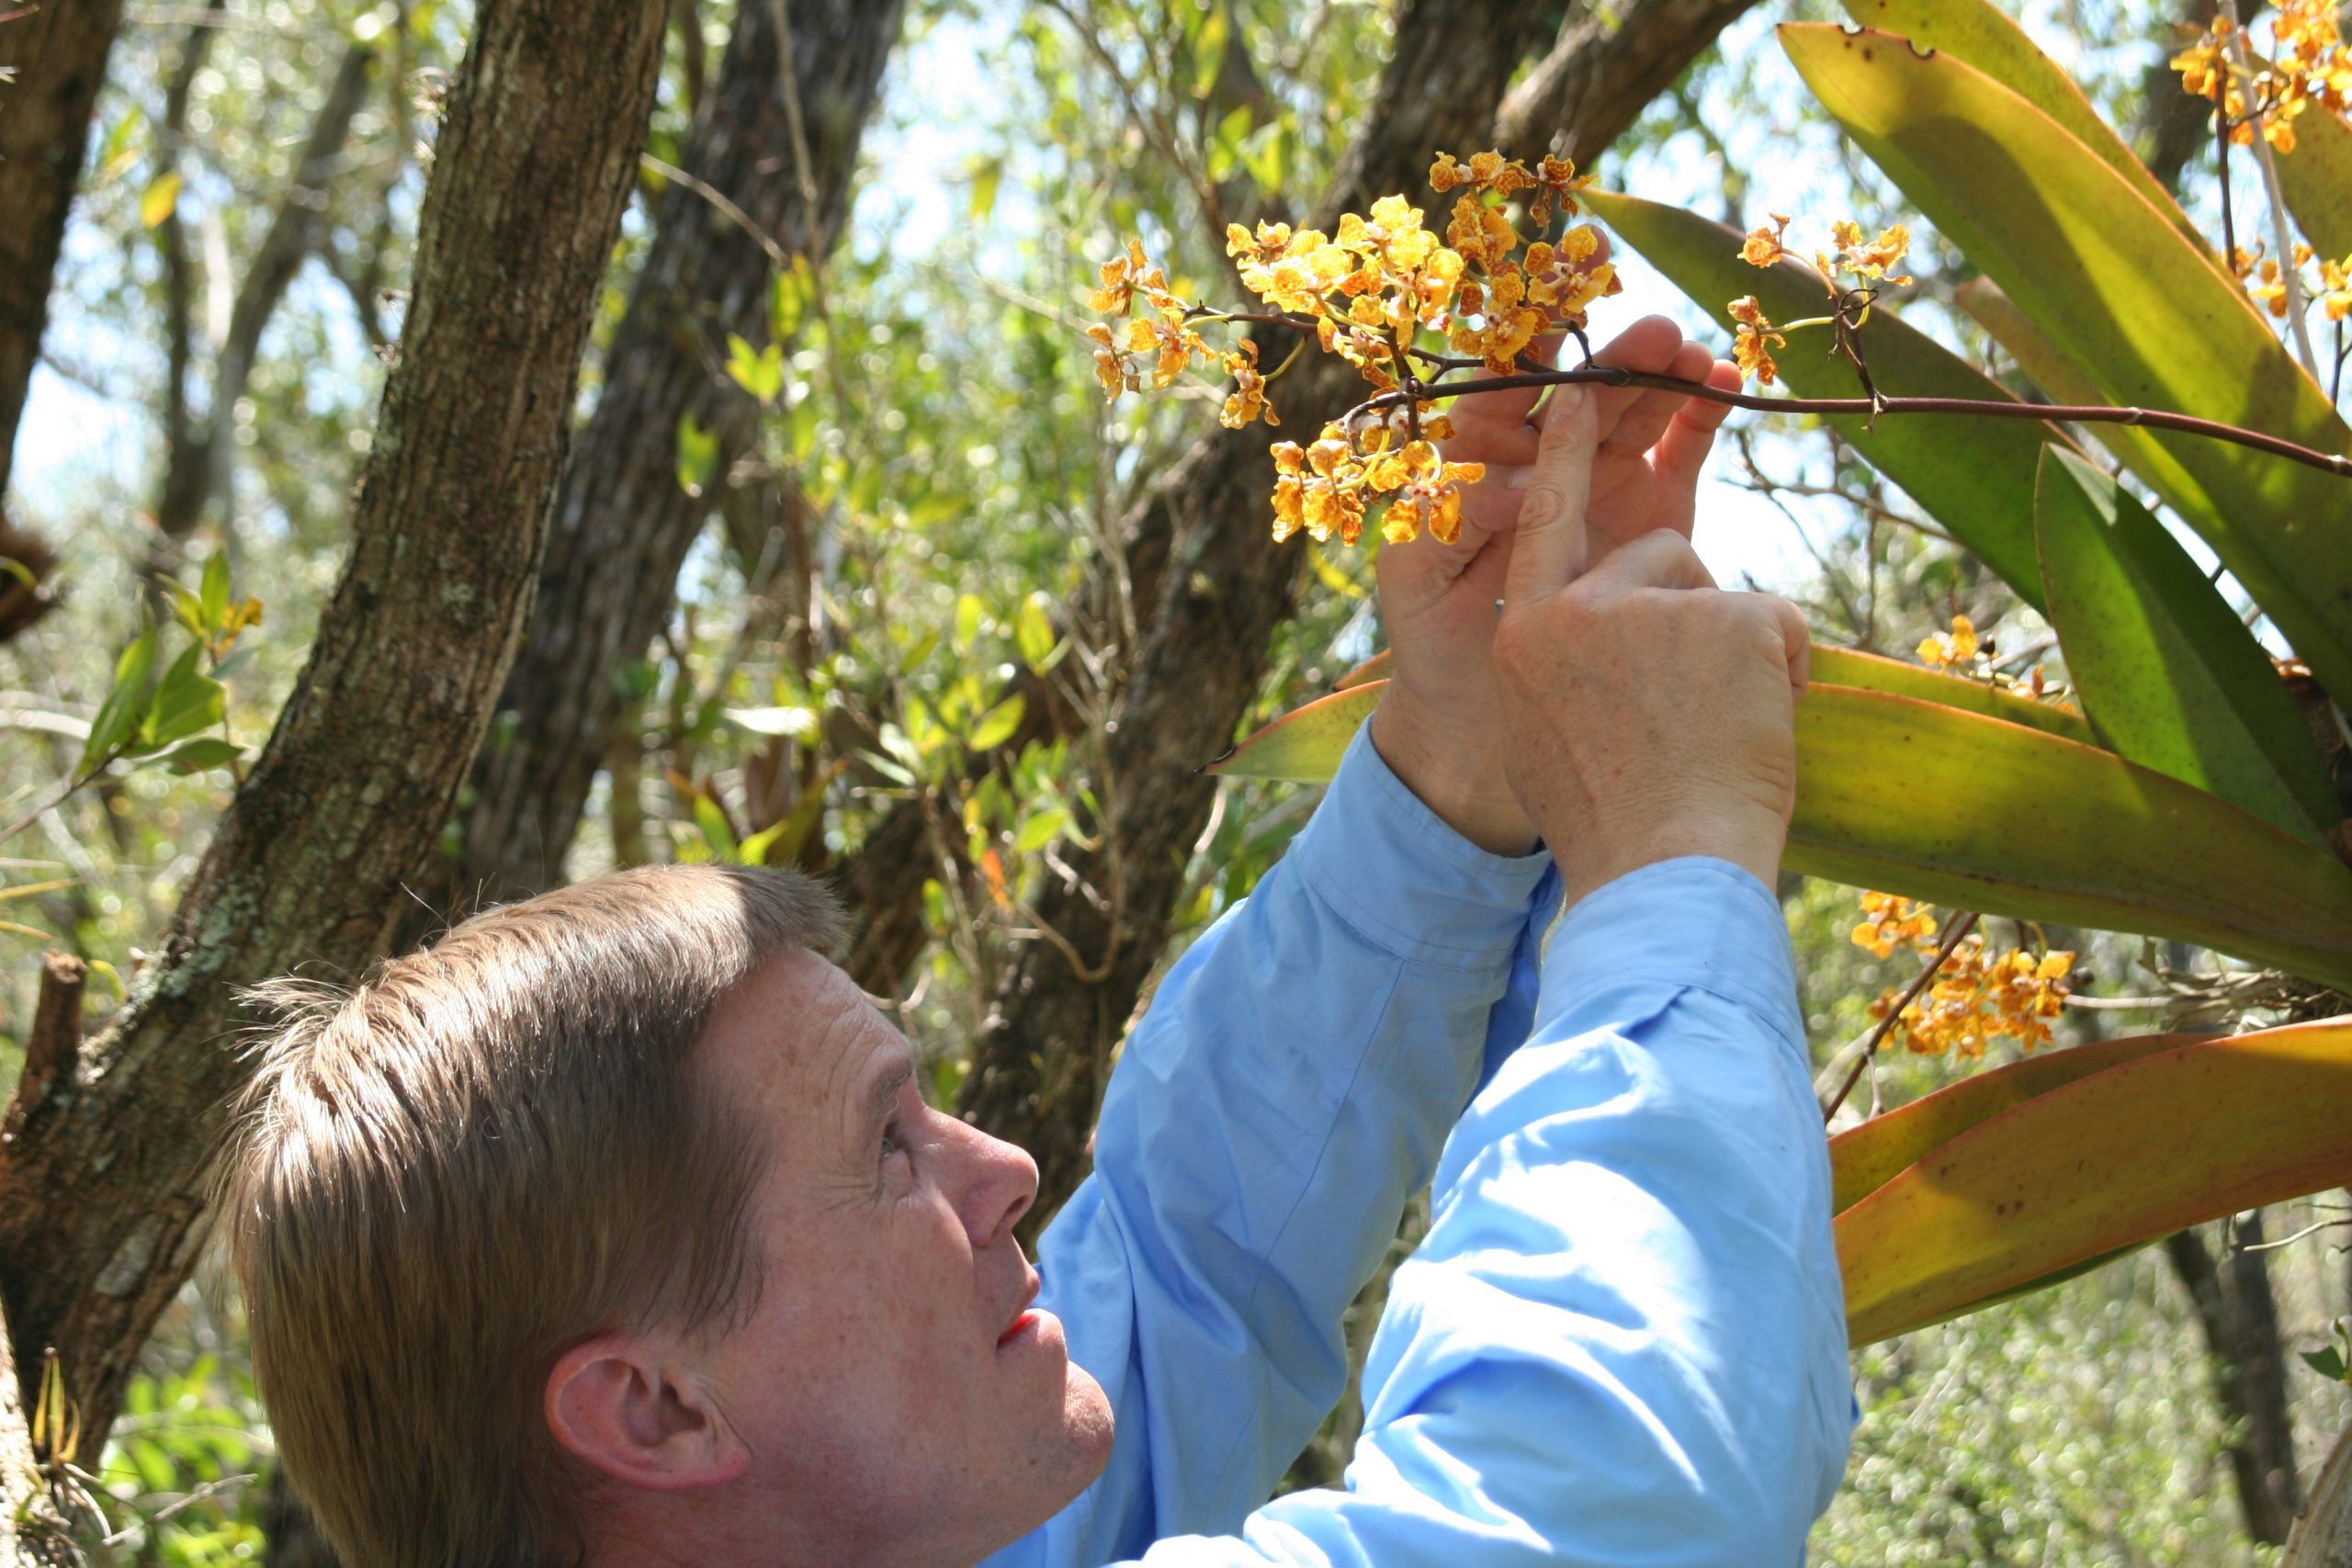 Bruce Holst of Selby Gardens counting inflorescence branches of spotted mule eared orchid (Trichocentrum undulatum), a rare Florida native. Photo: Jesse Hoffman, courtesy of Marie Selby Botanical Gardens.